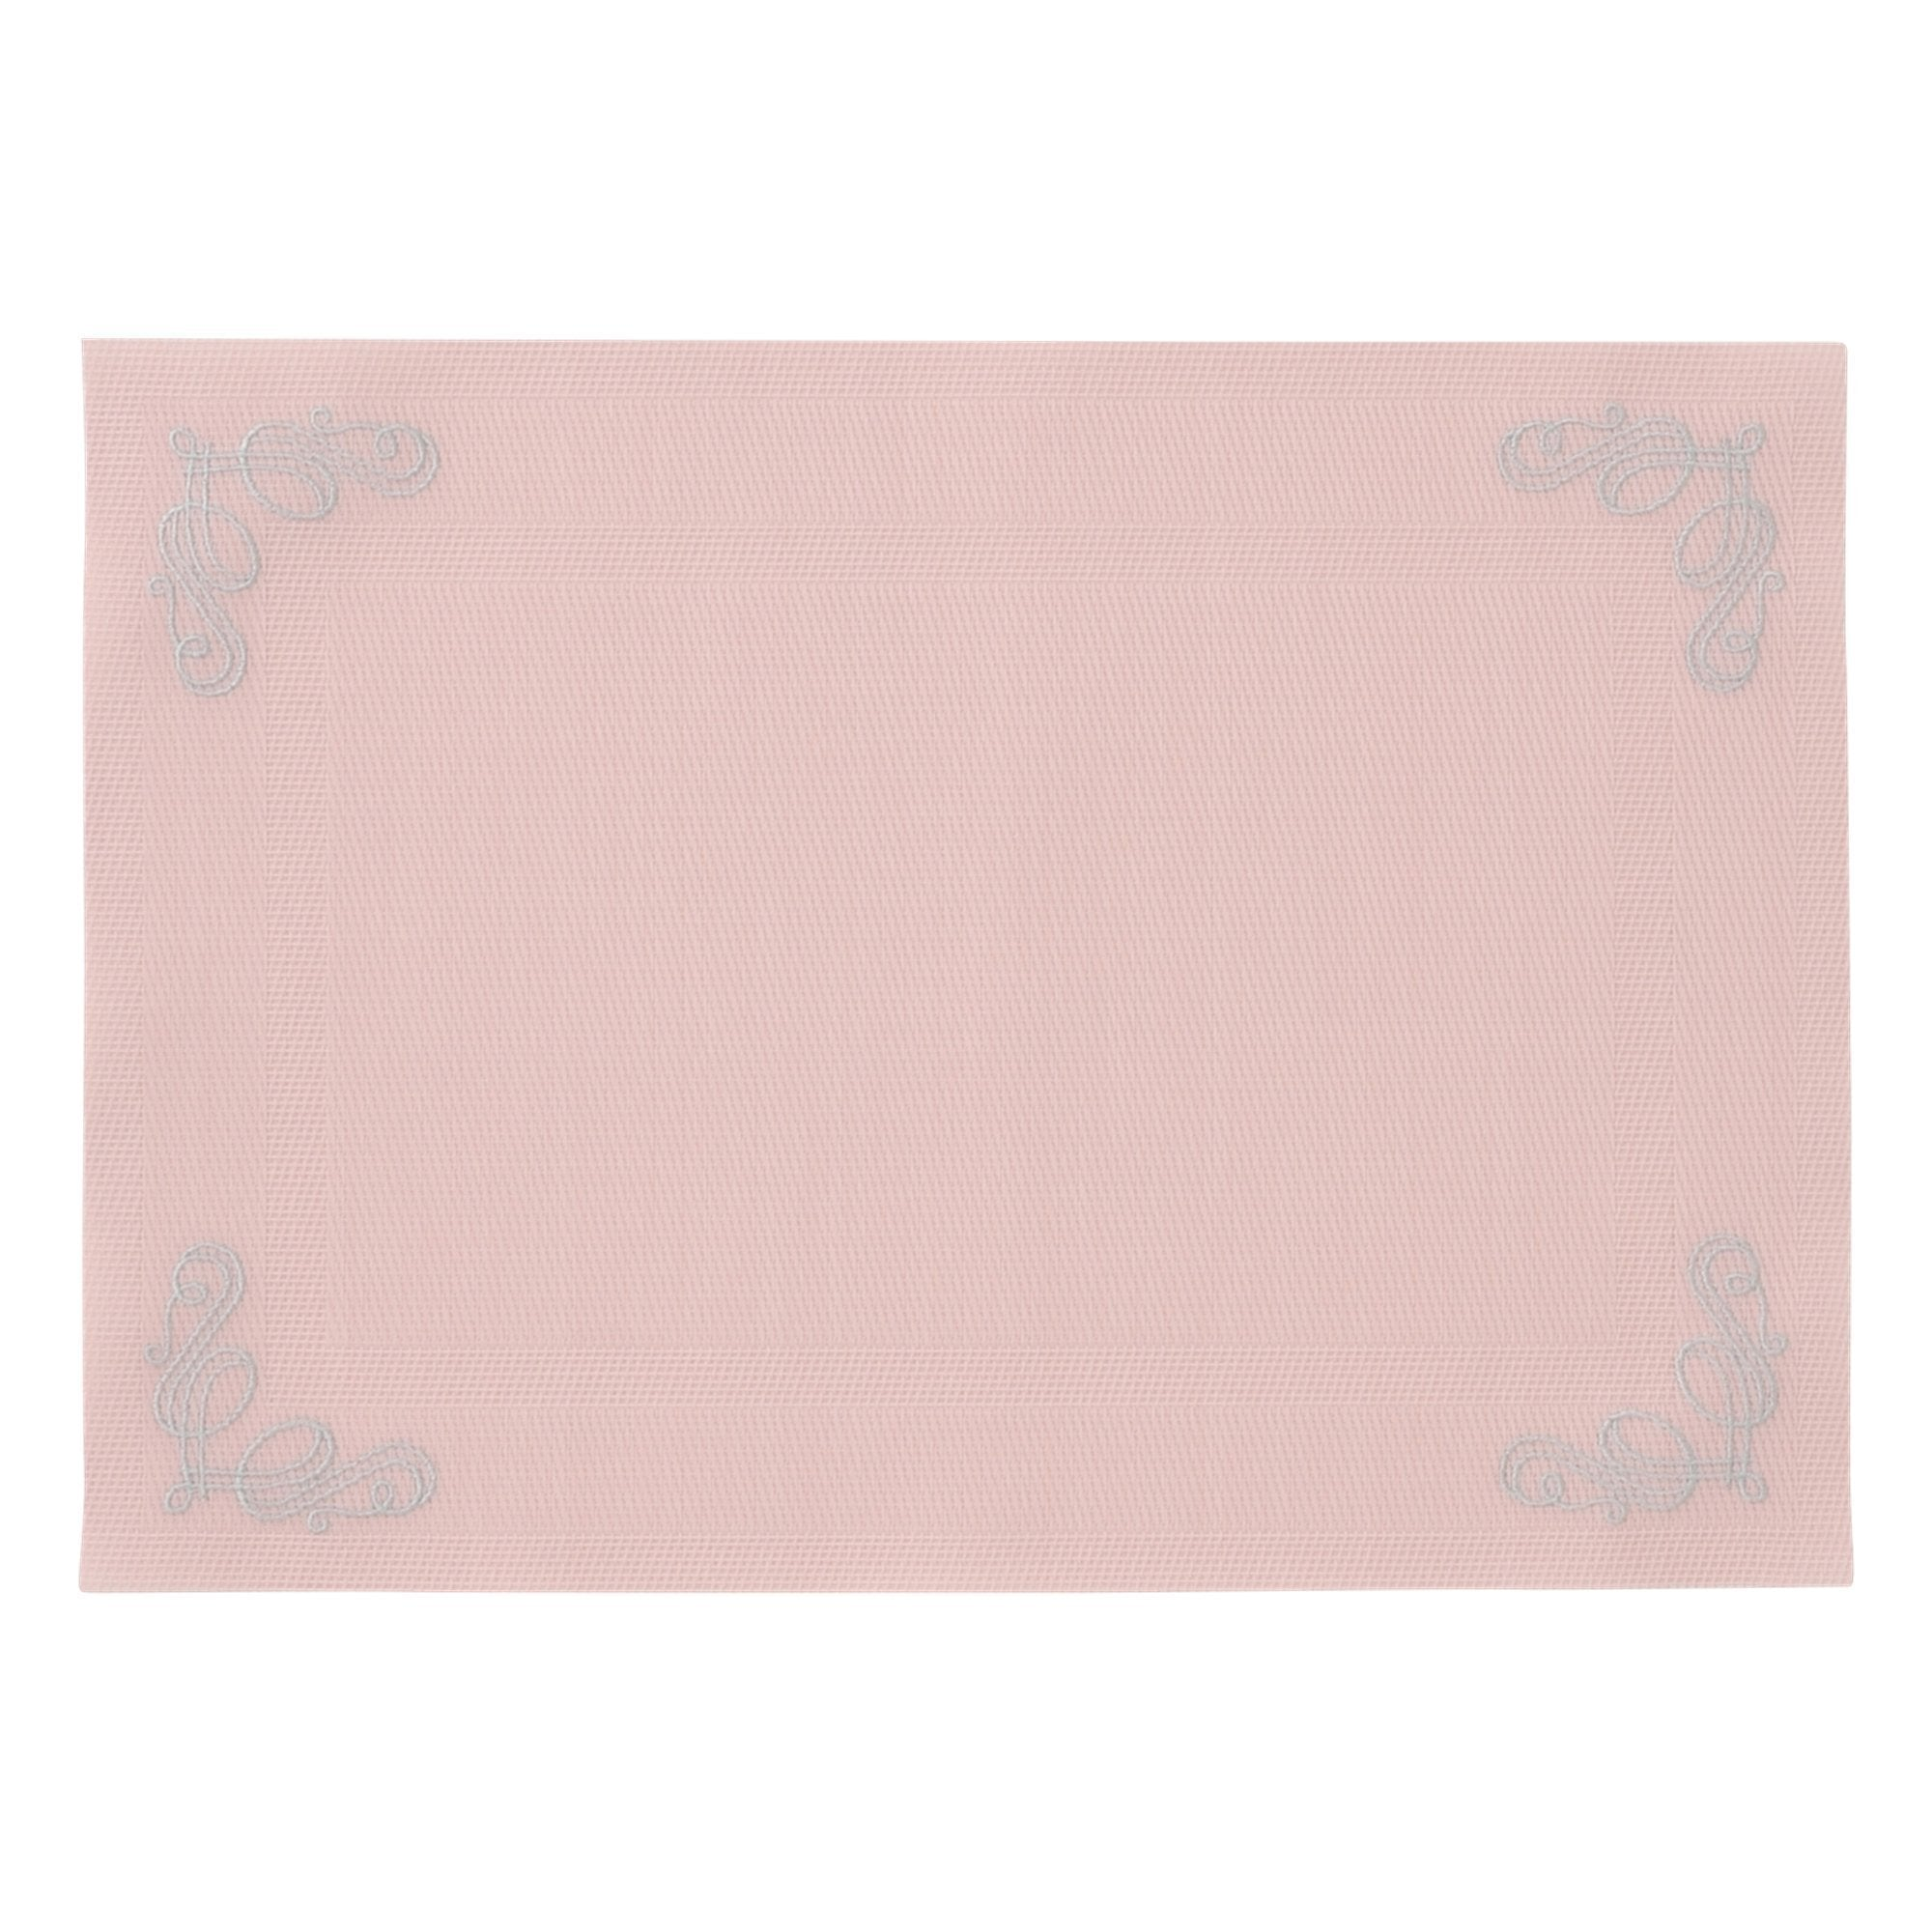 KURVE Lunch Mat Pink - weare-francfranc